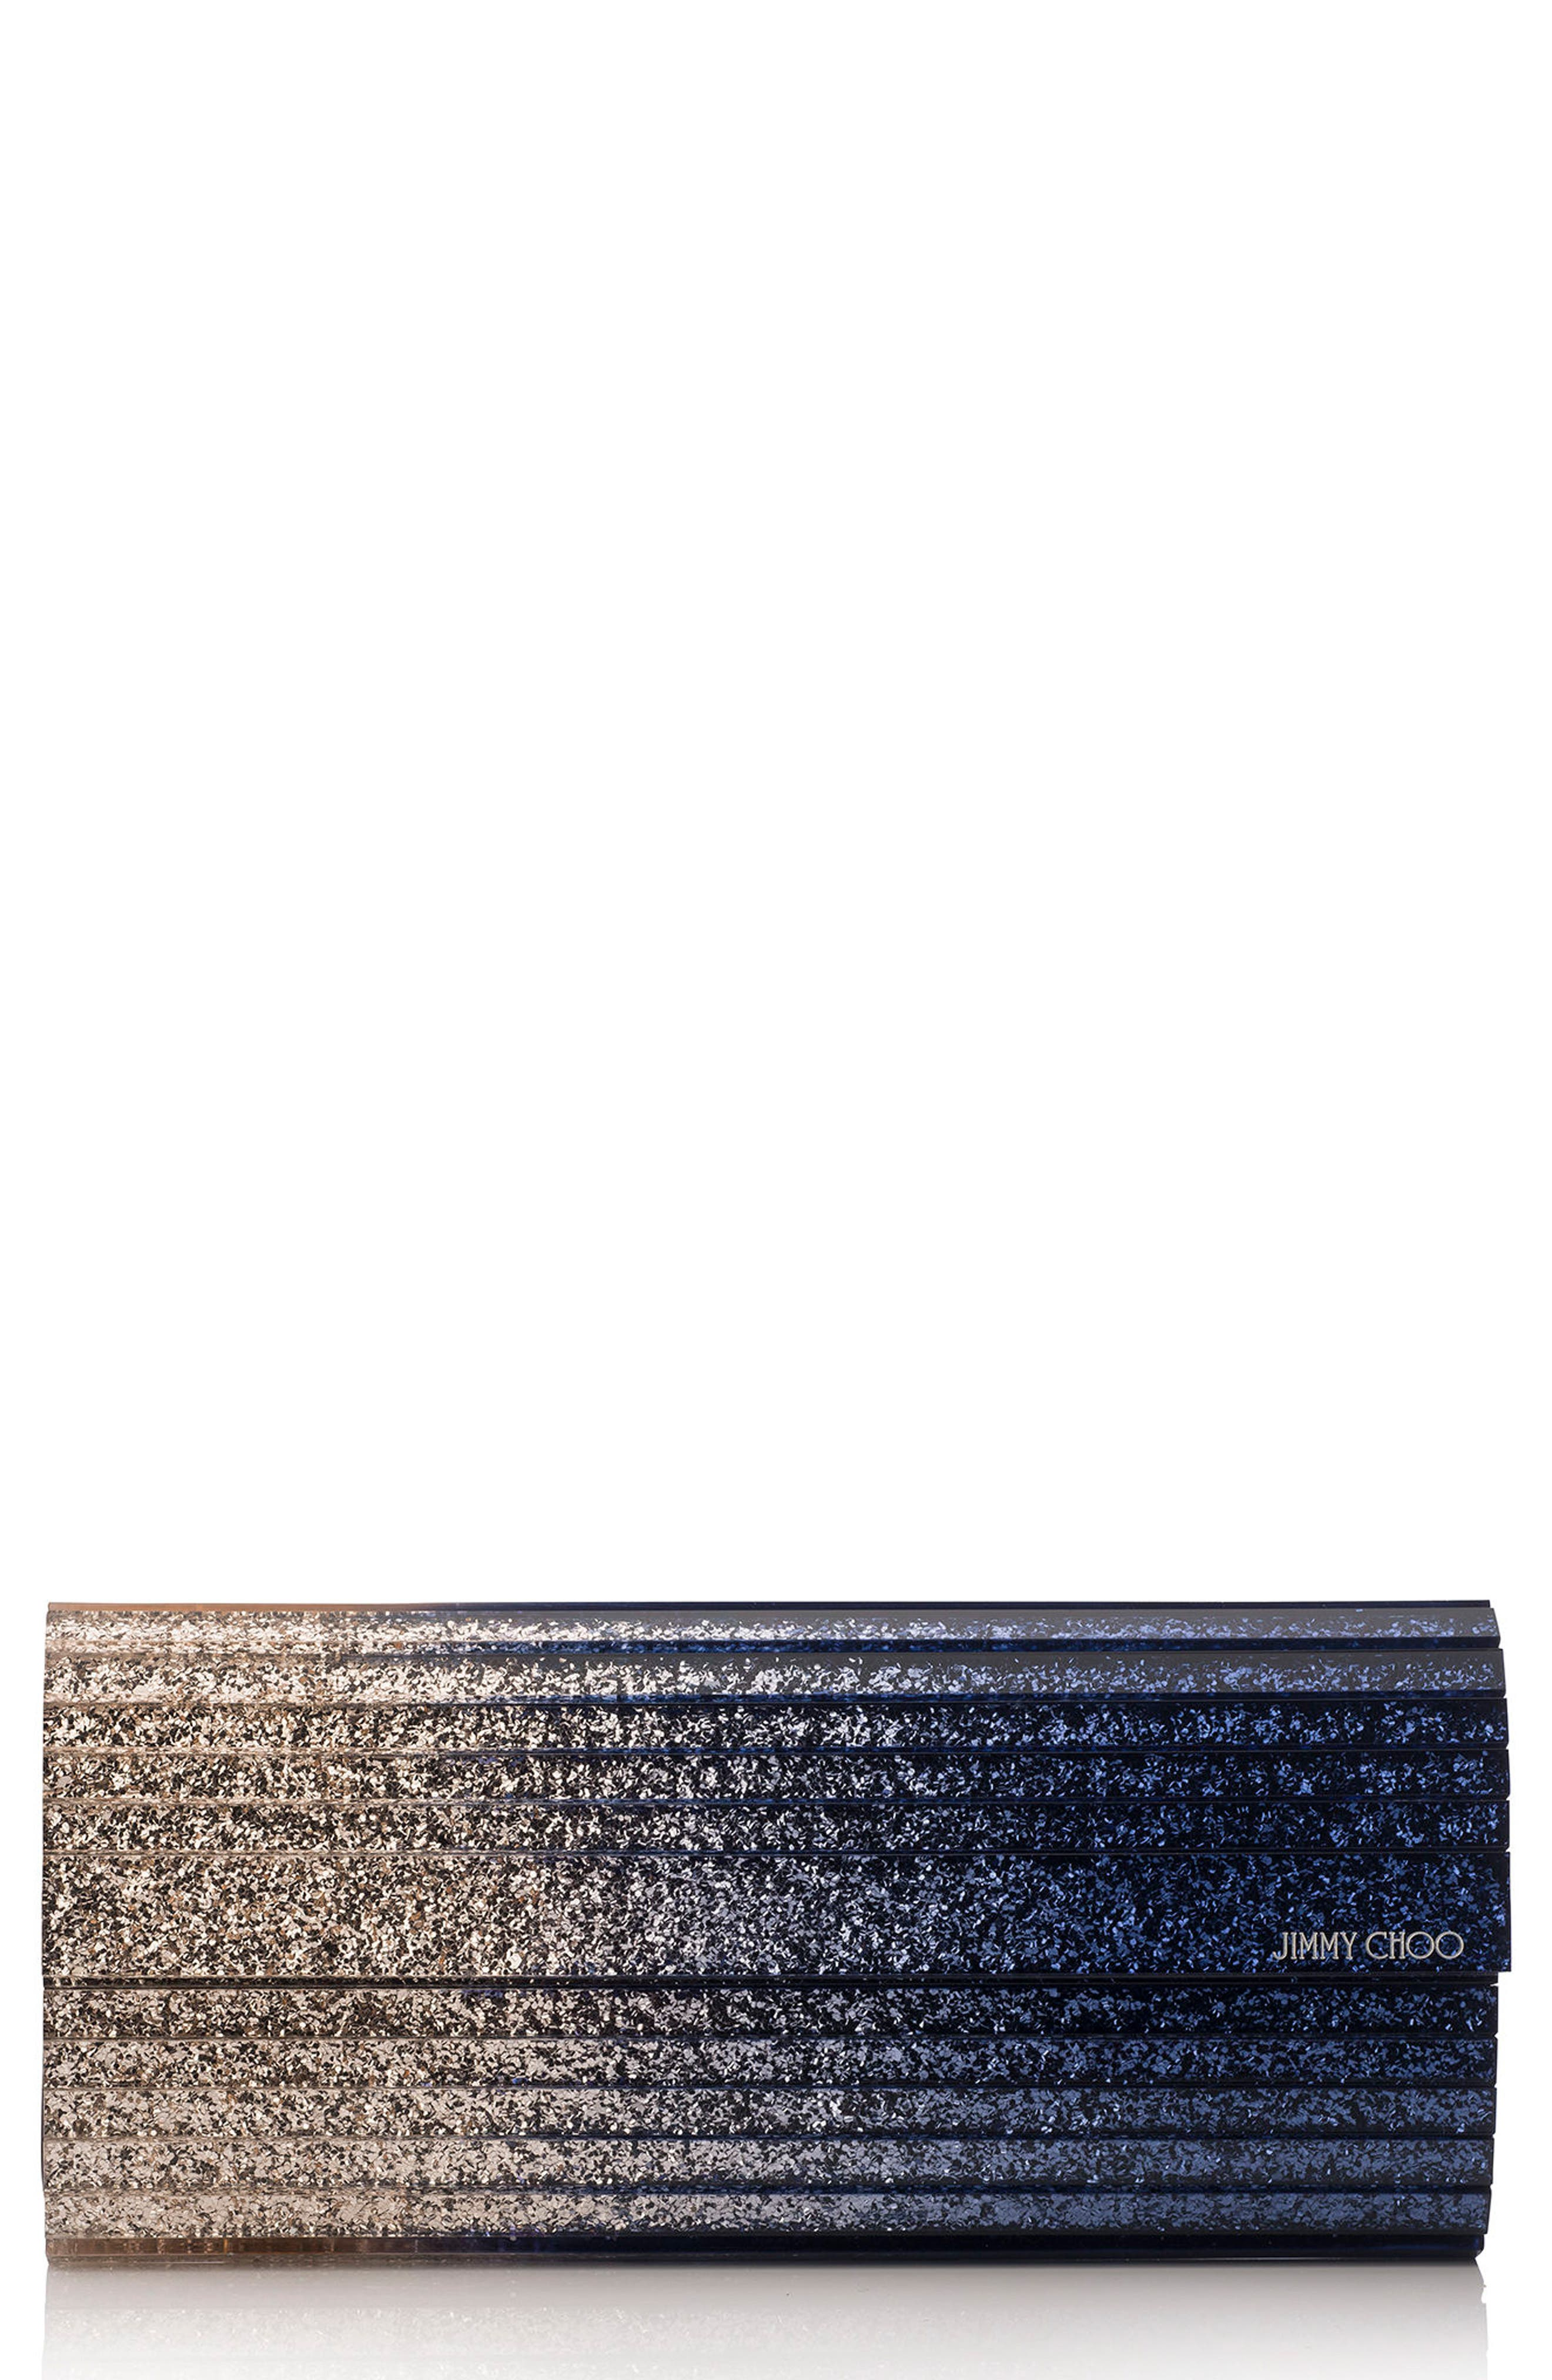 'Sweetie' Clutch,                             Main thumbnail 1, color,                             Silver/ Navy